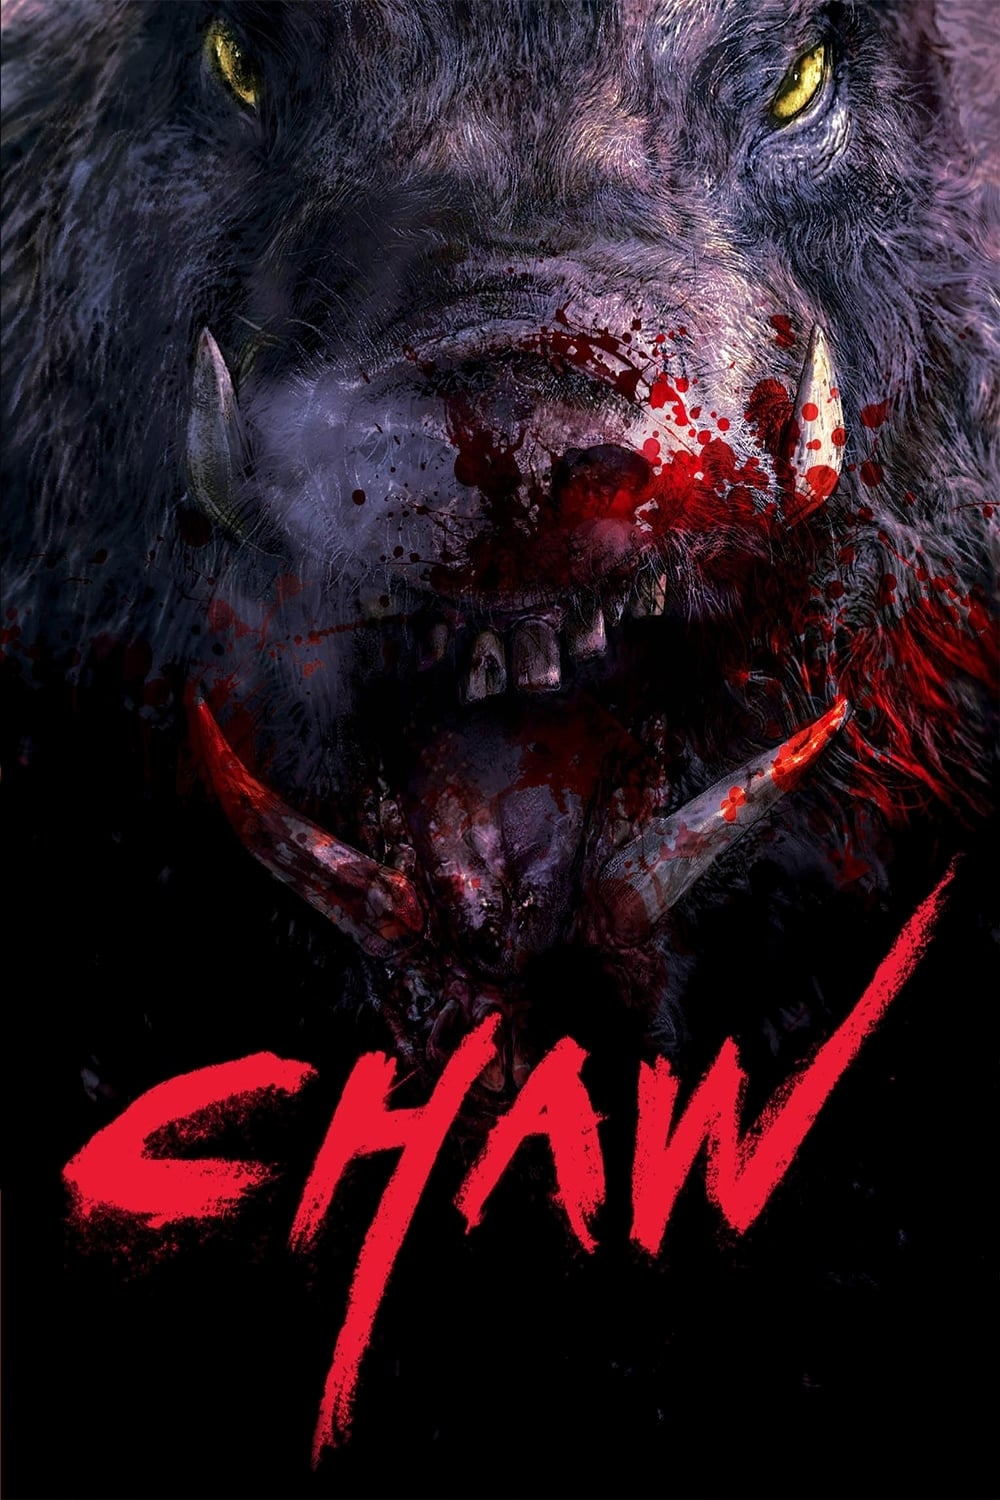 Chaw on FREECABLE TV